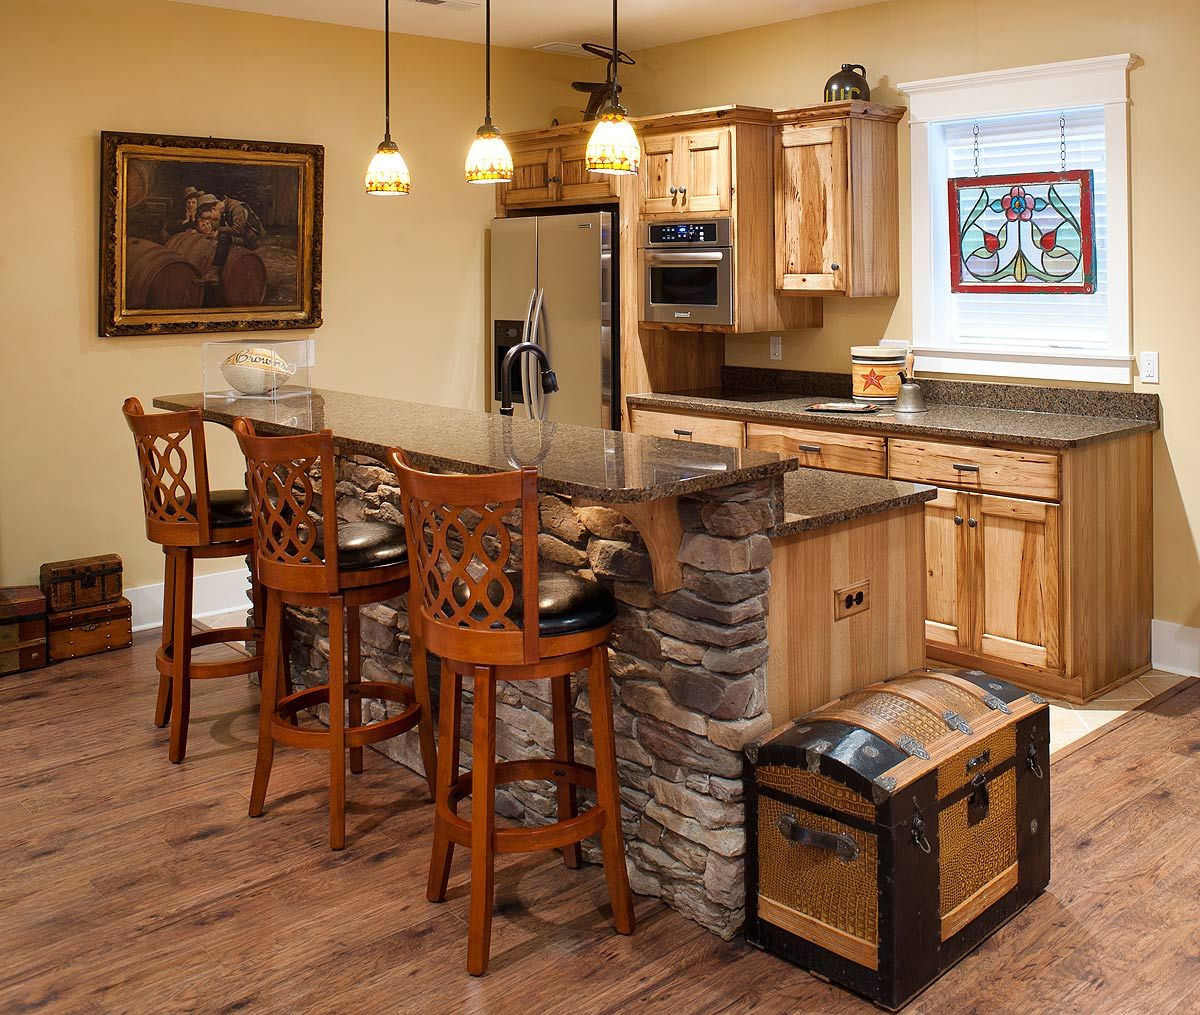 rustic hickory kitchen cabinets rustic hickory pub kitchen design pictures pictures of on kitchen ideas cabinets id=55179